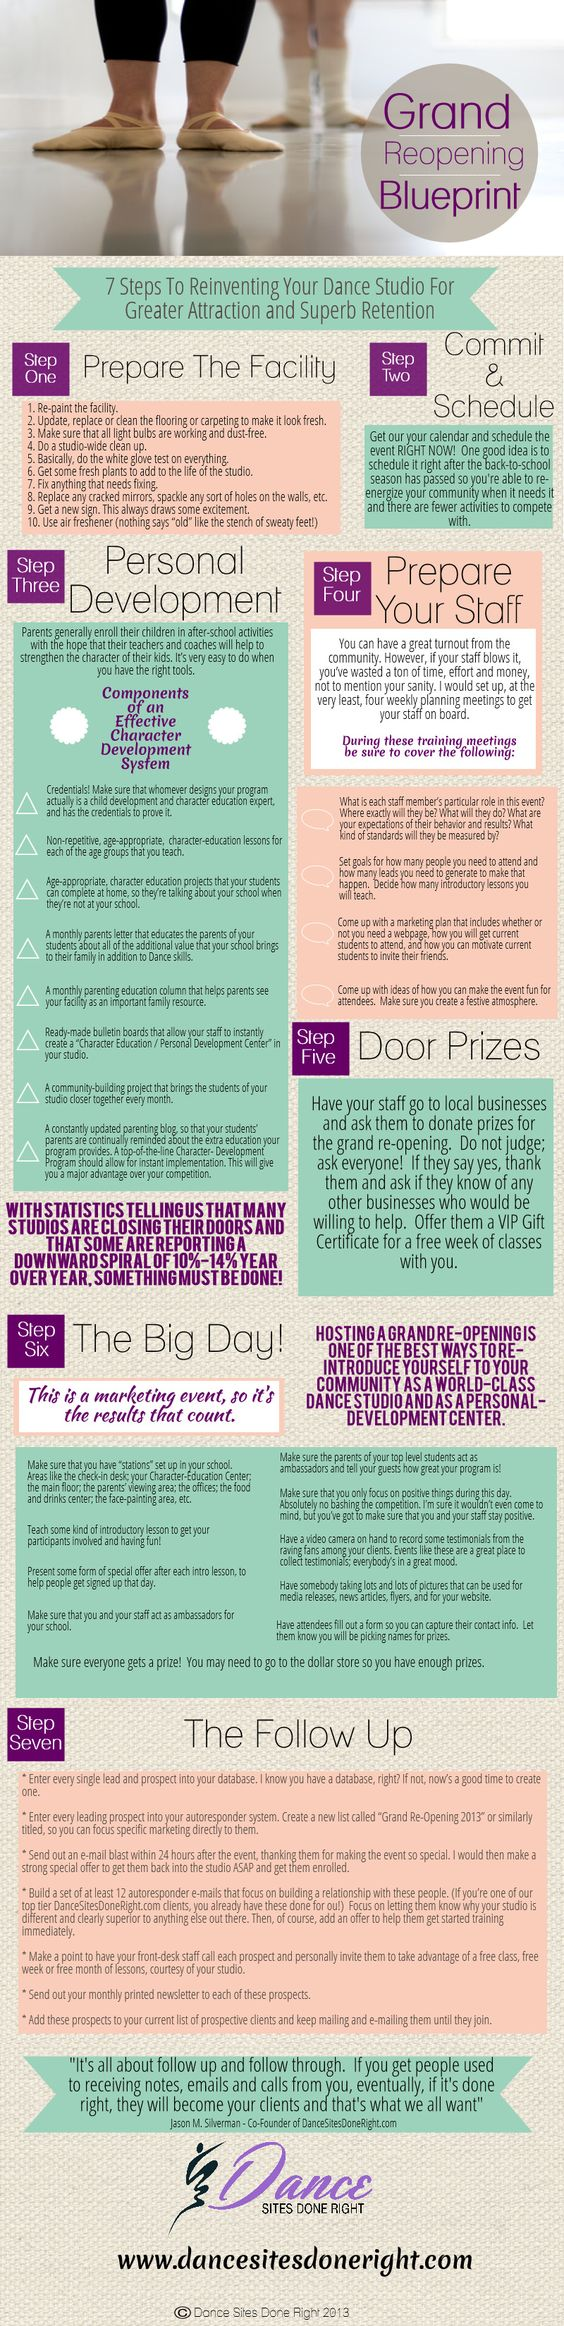 how to boost business at your dance studio a grand reopening how to boost business at your dance studio a grand reopening biztip studio